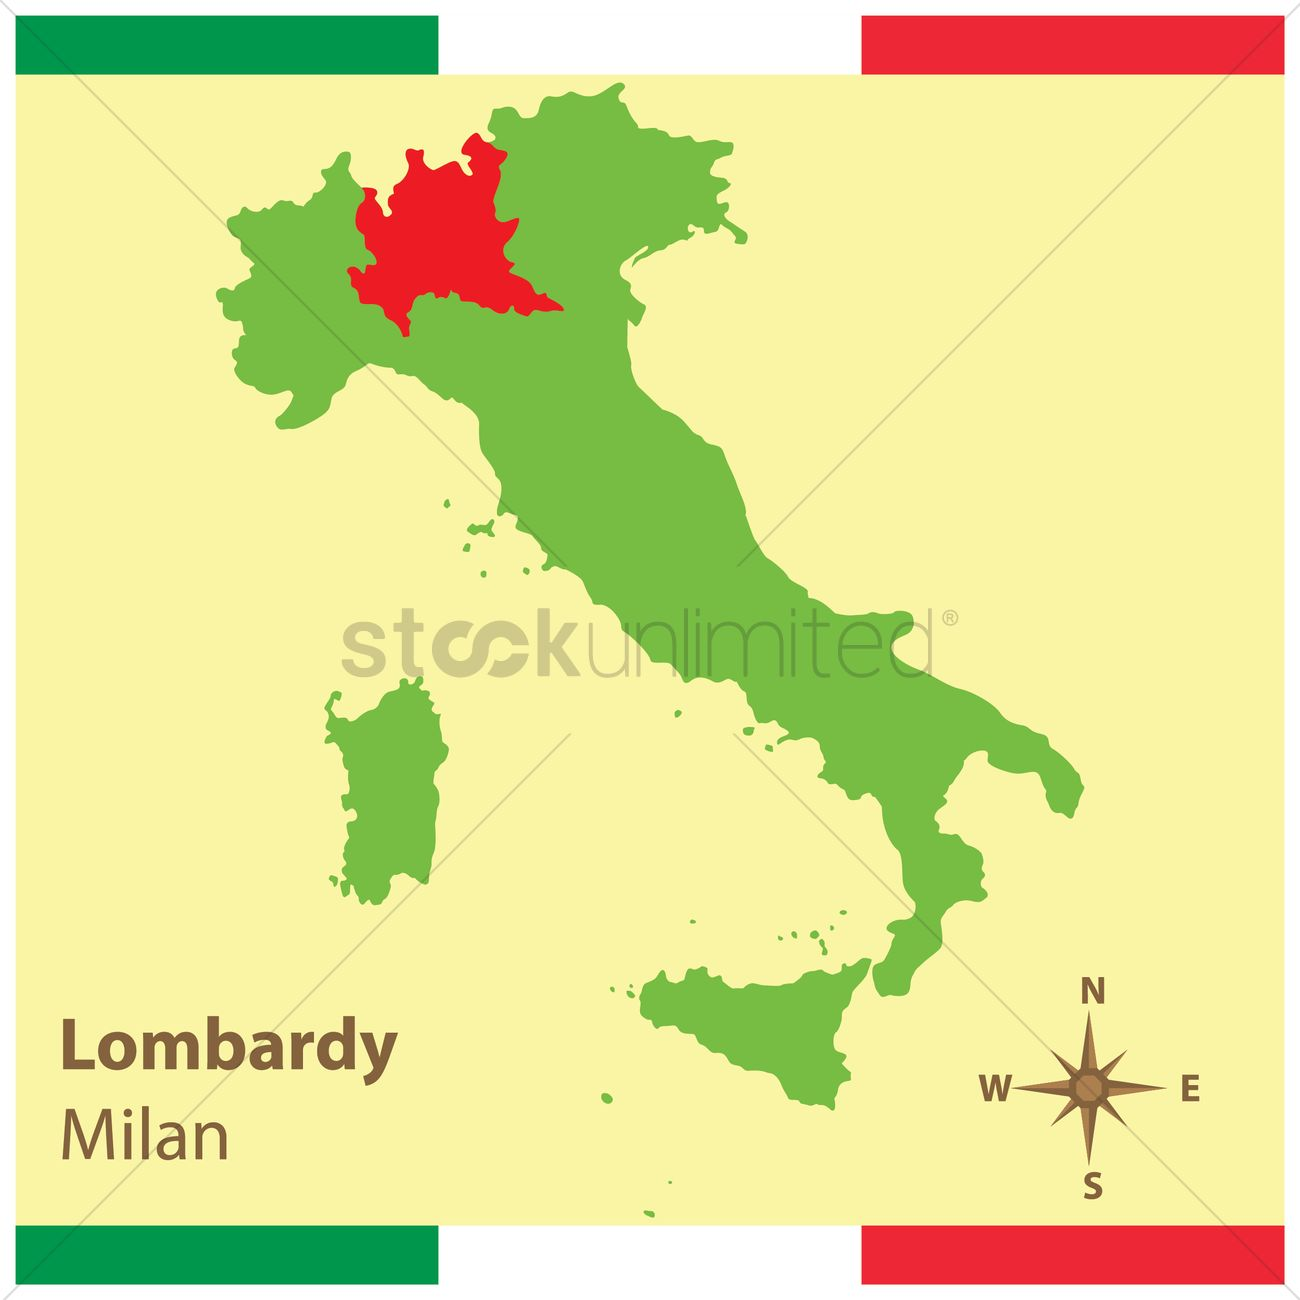 Lombardy On Italy Map Vector Image 1583937 Stockunlimited